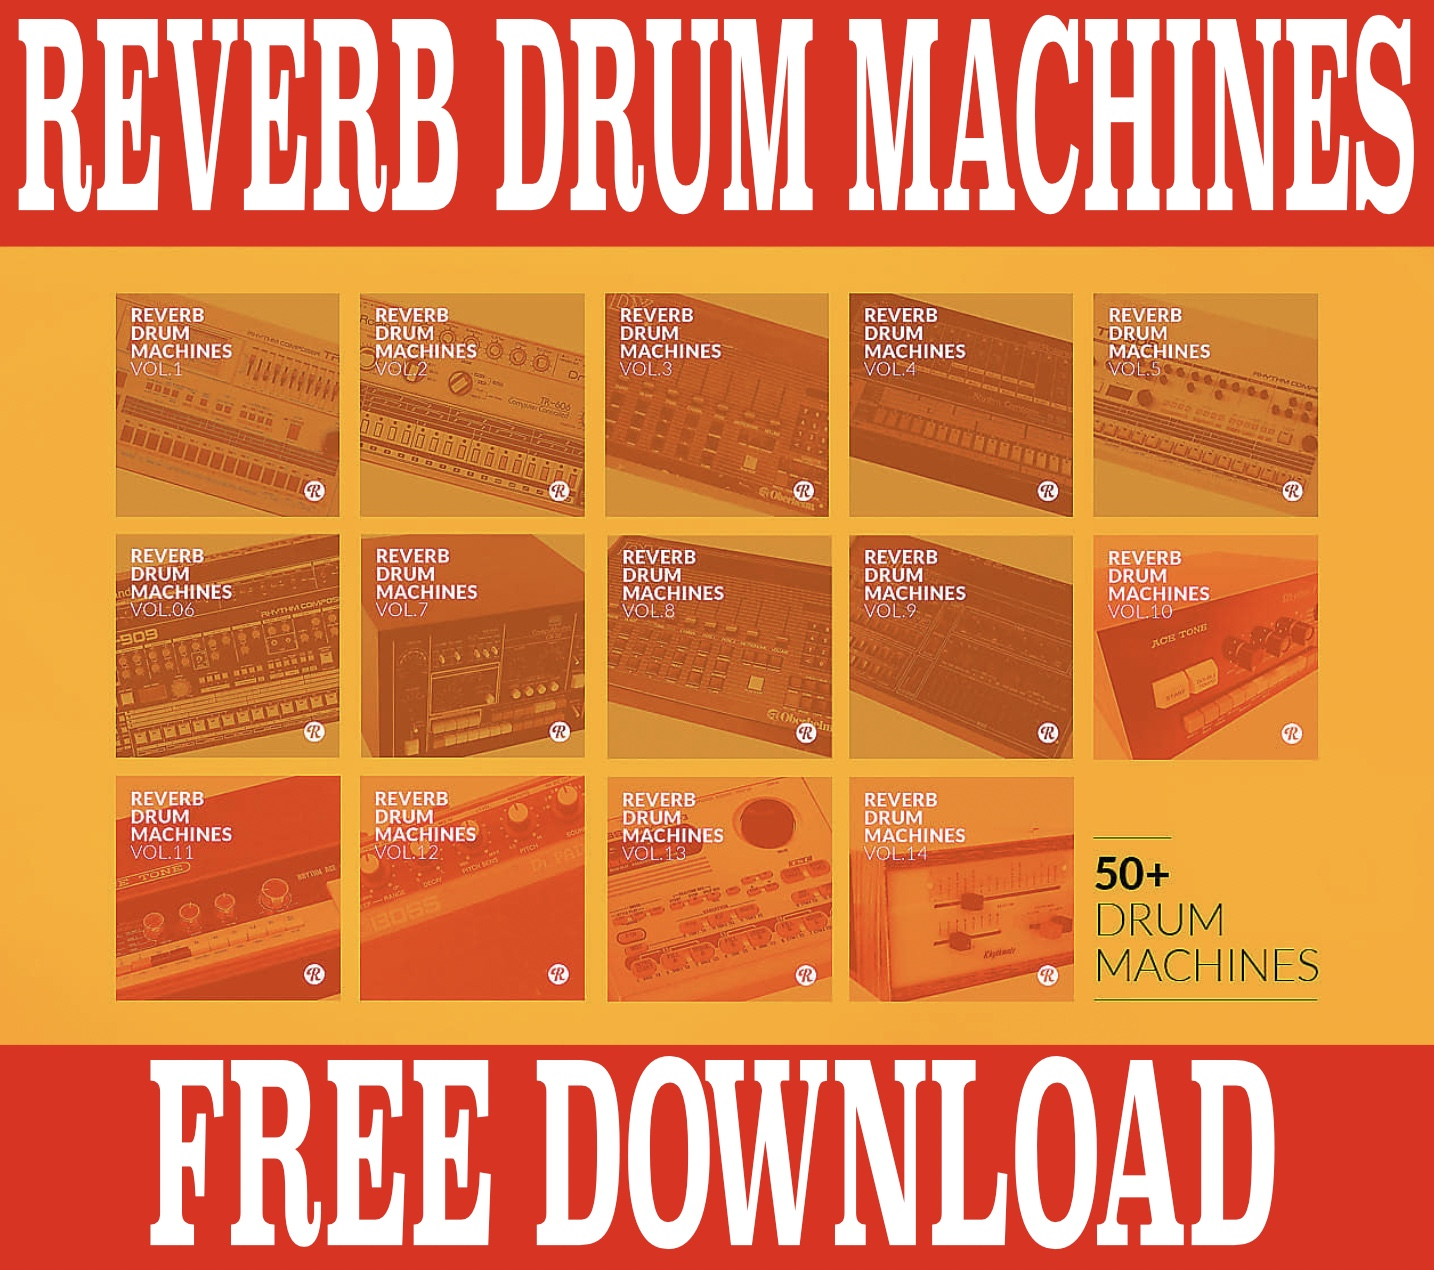 Reverb Drum Machines